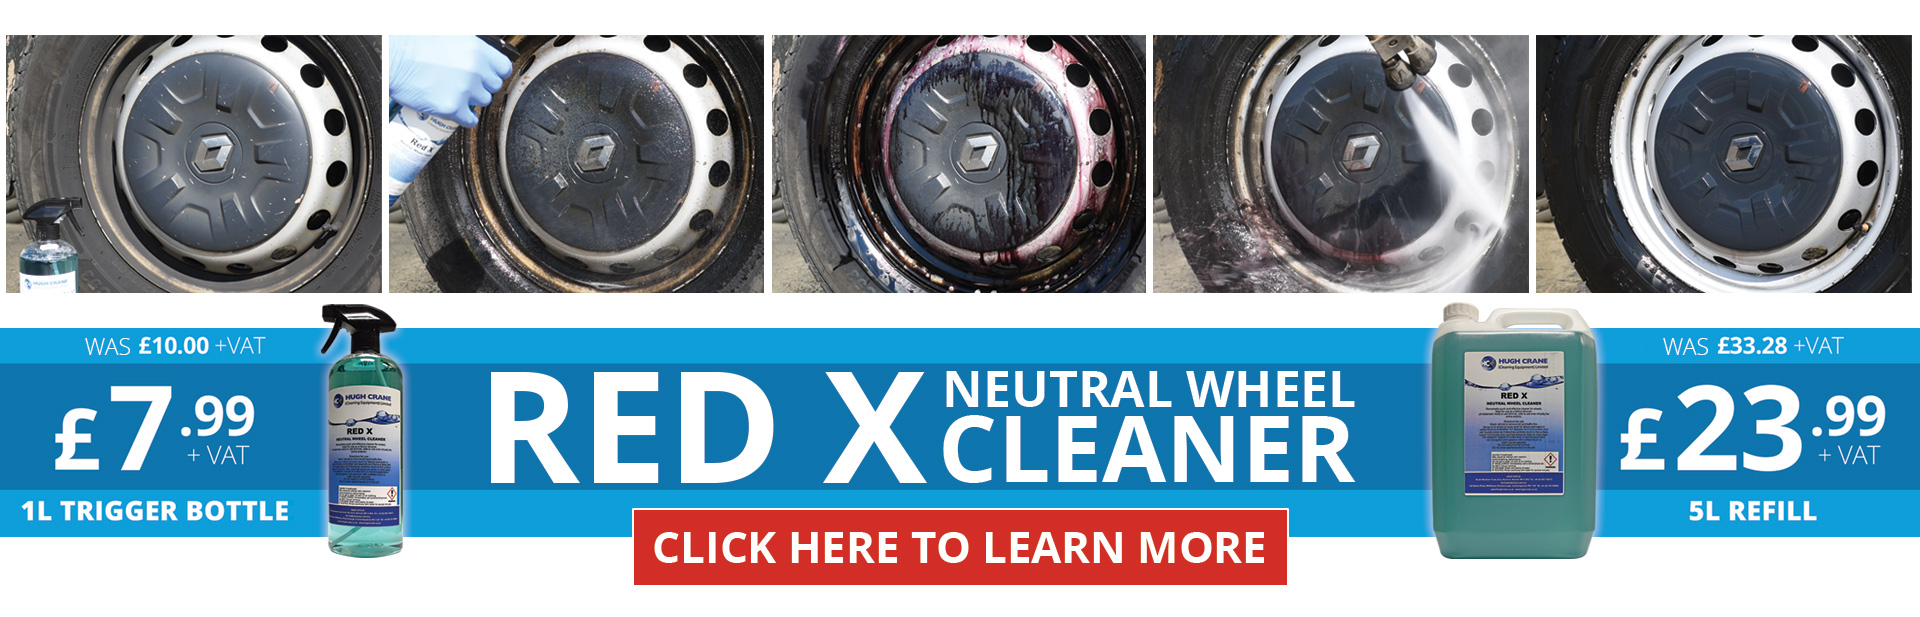 Red X Neutral Wheel Cleaner